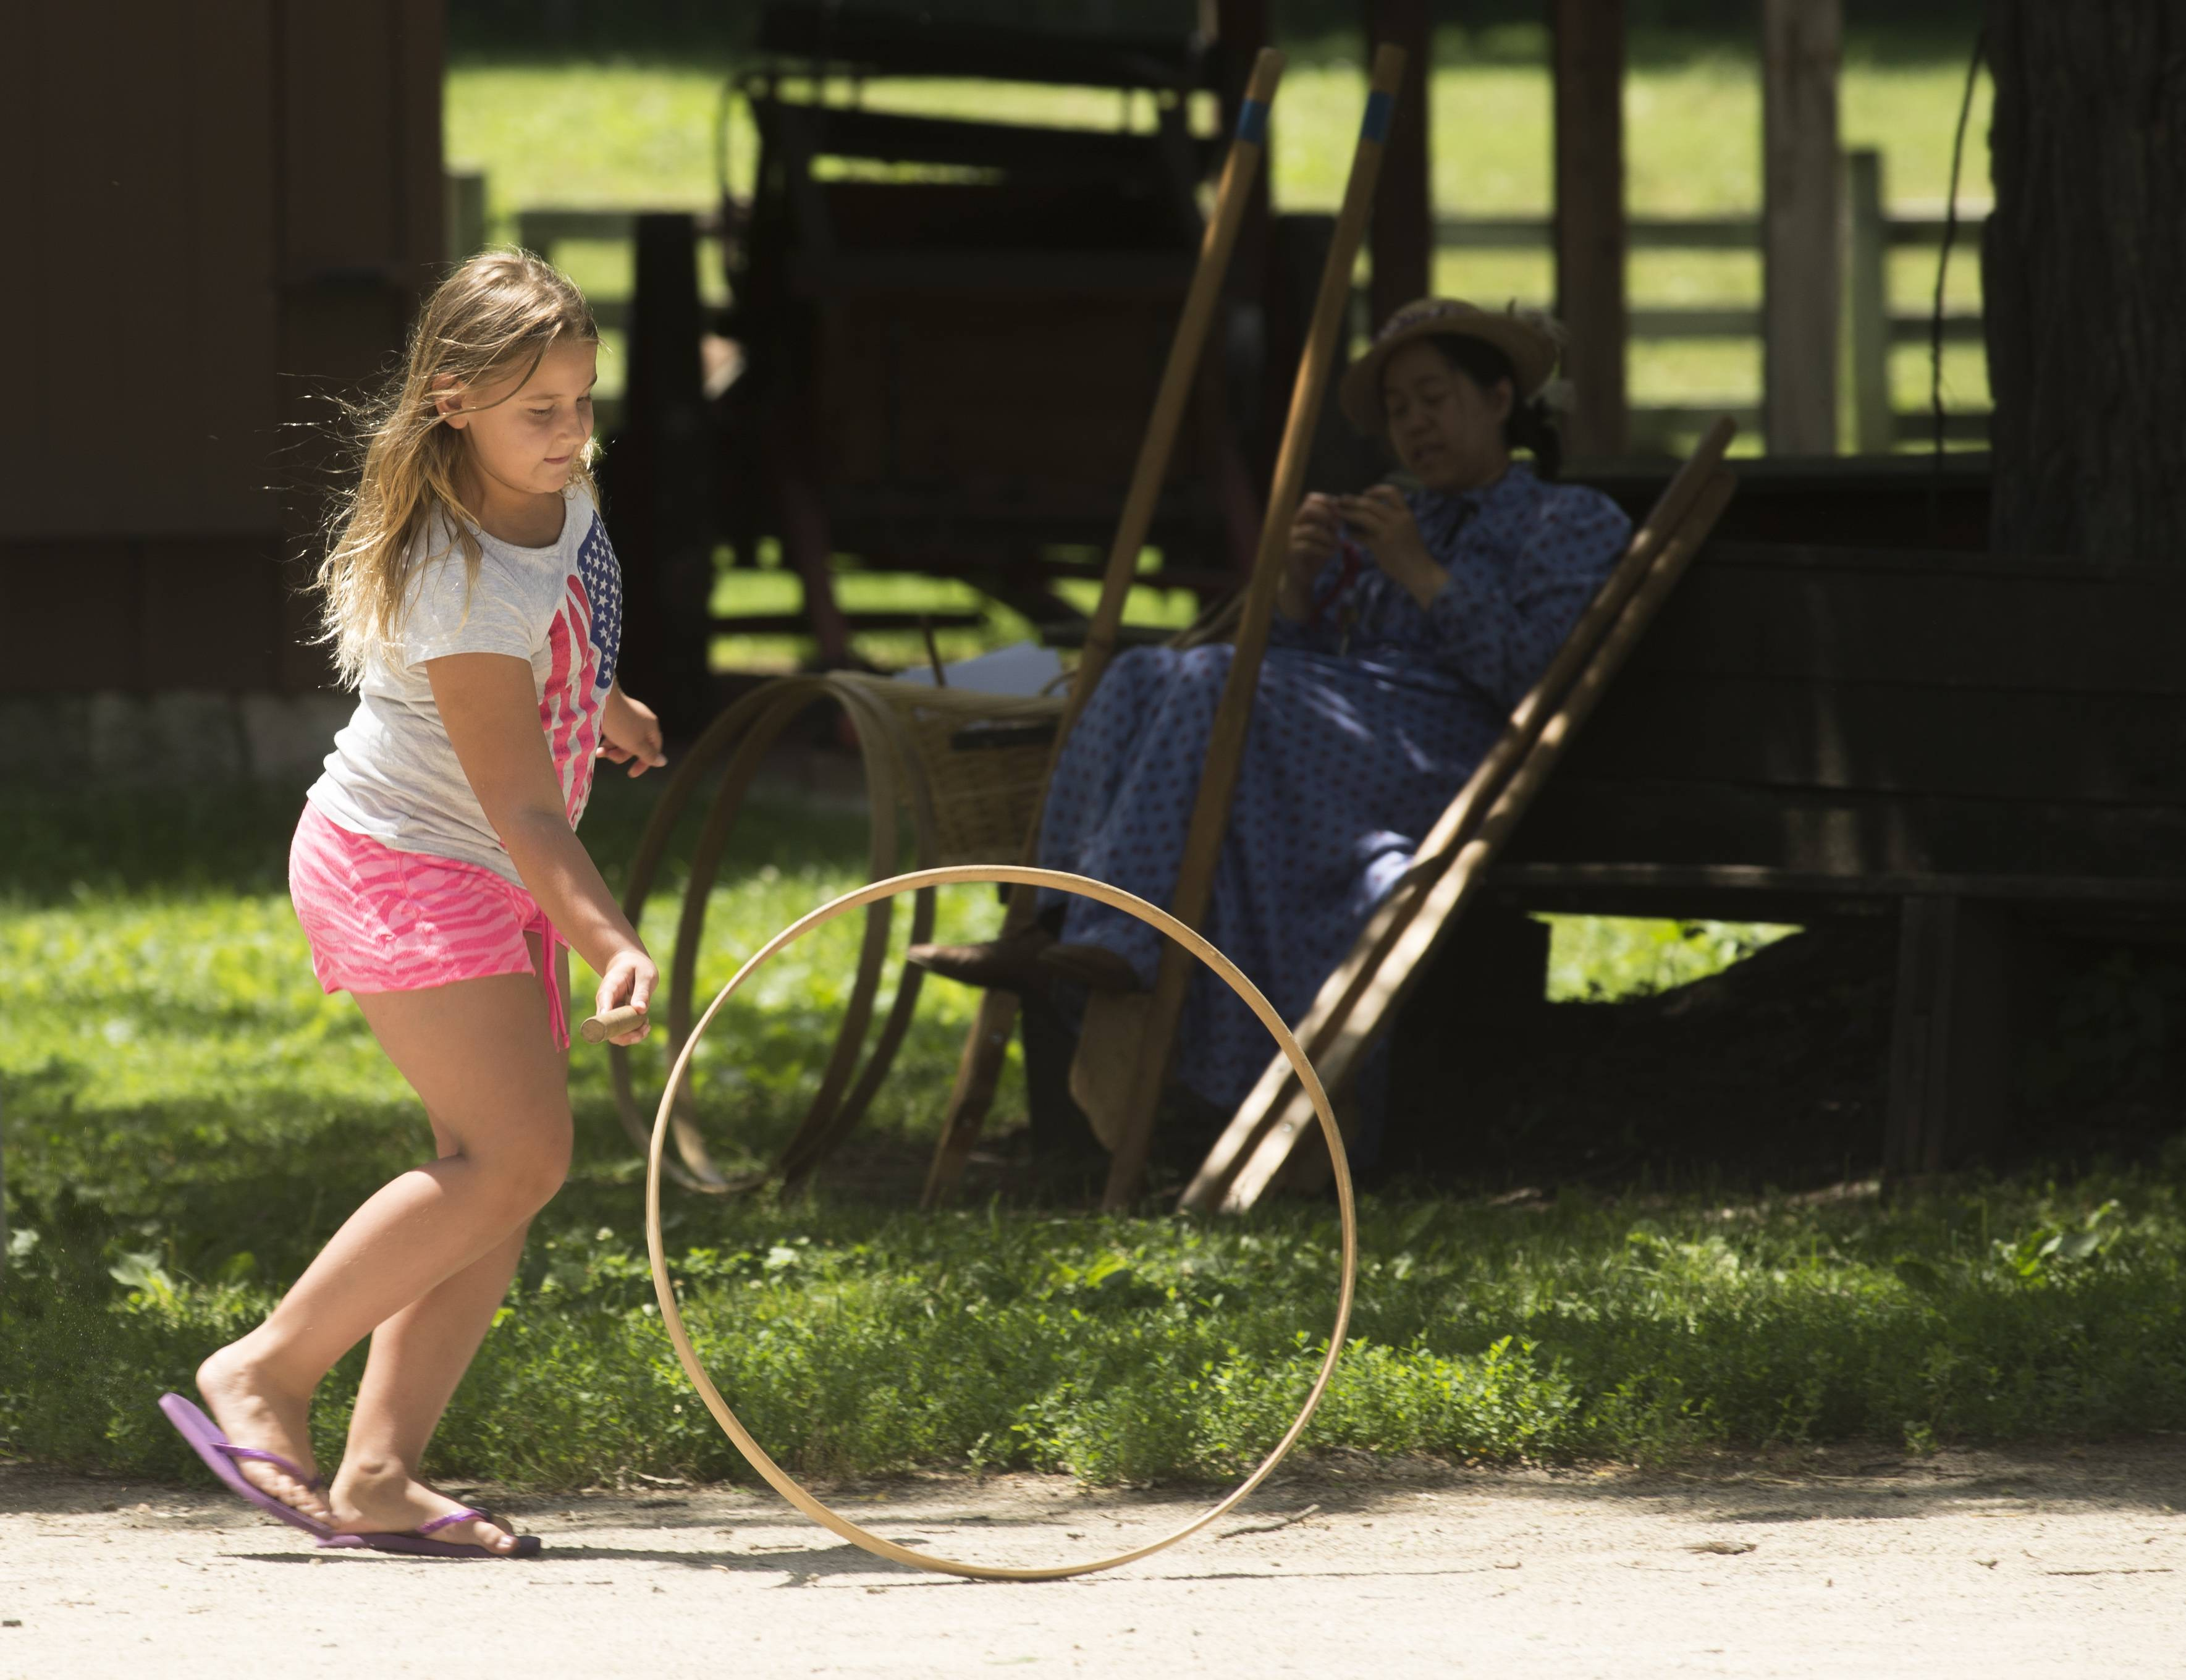 Mia Rosado, 9, of Carol Stream, plays with a hoop and stick just as children in the 1890's did while at the Kline Creek Farm's old-fashioned 4th of July in West Chicago.